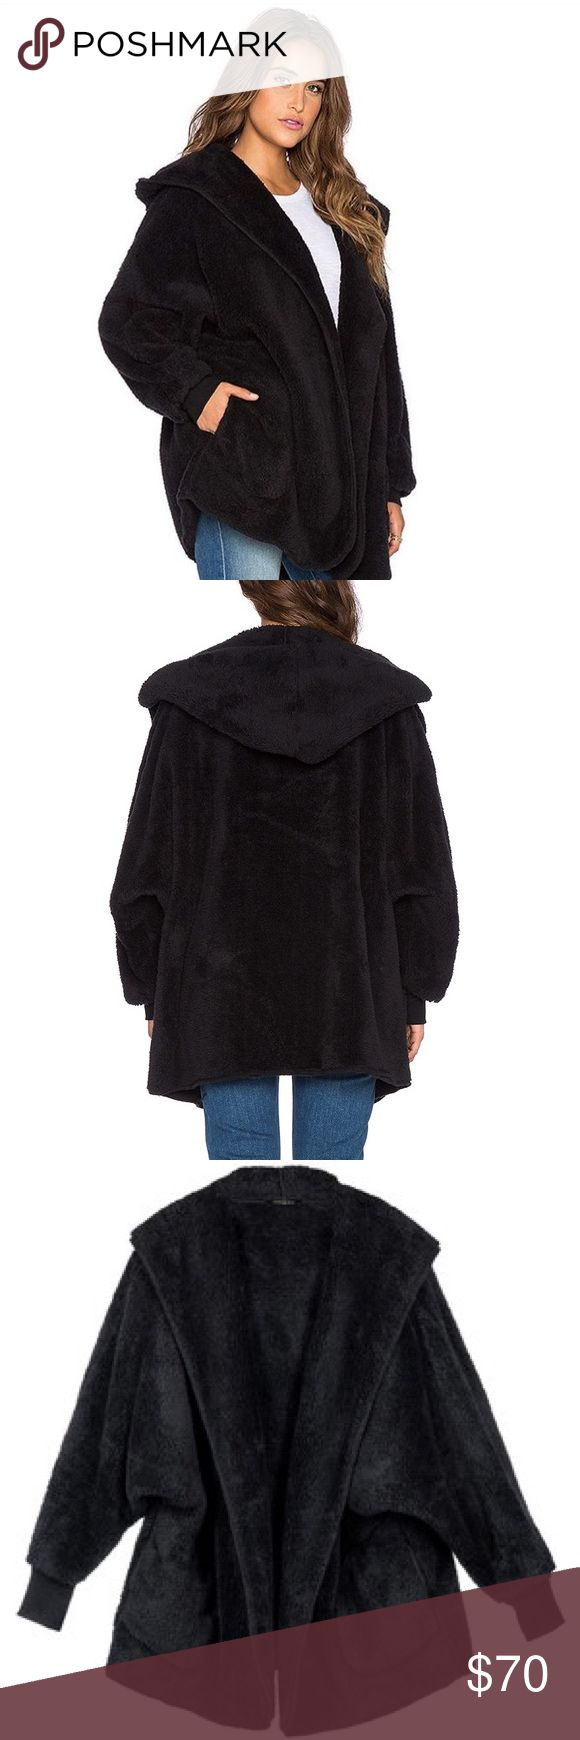 Whitney Eve Black Hooded Jacket Literally feels like you're wearing a blanket! Super comfortable but still stylish. Has pockets and a hood. Excellent condition. Runs a little big. Whitney Eve Jackets & Coats